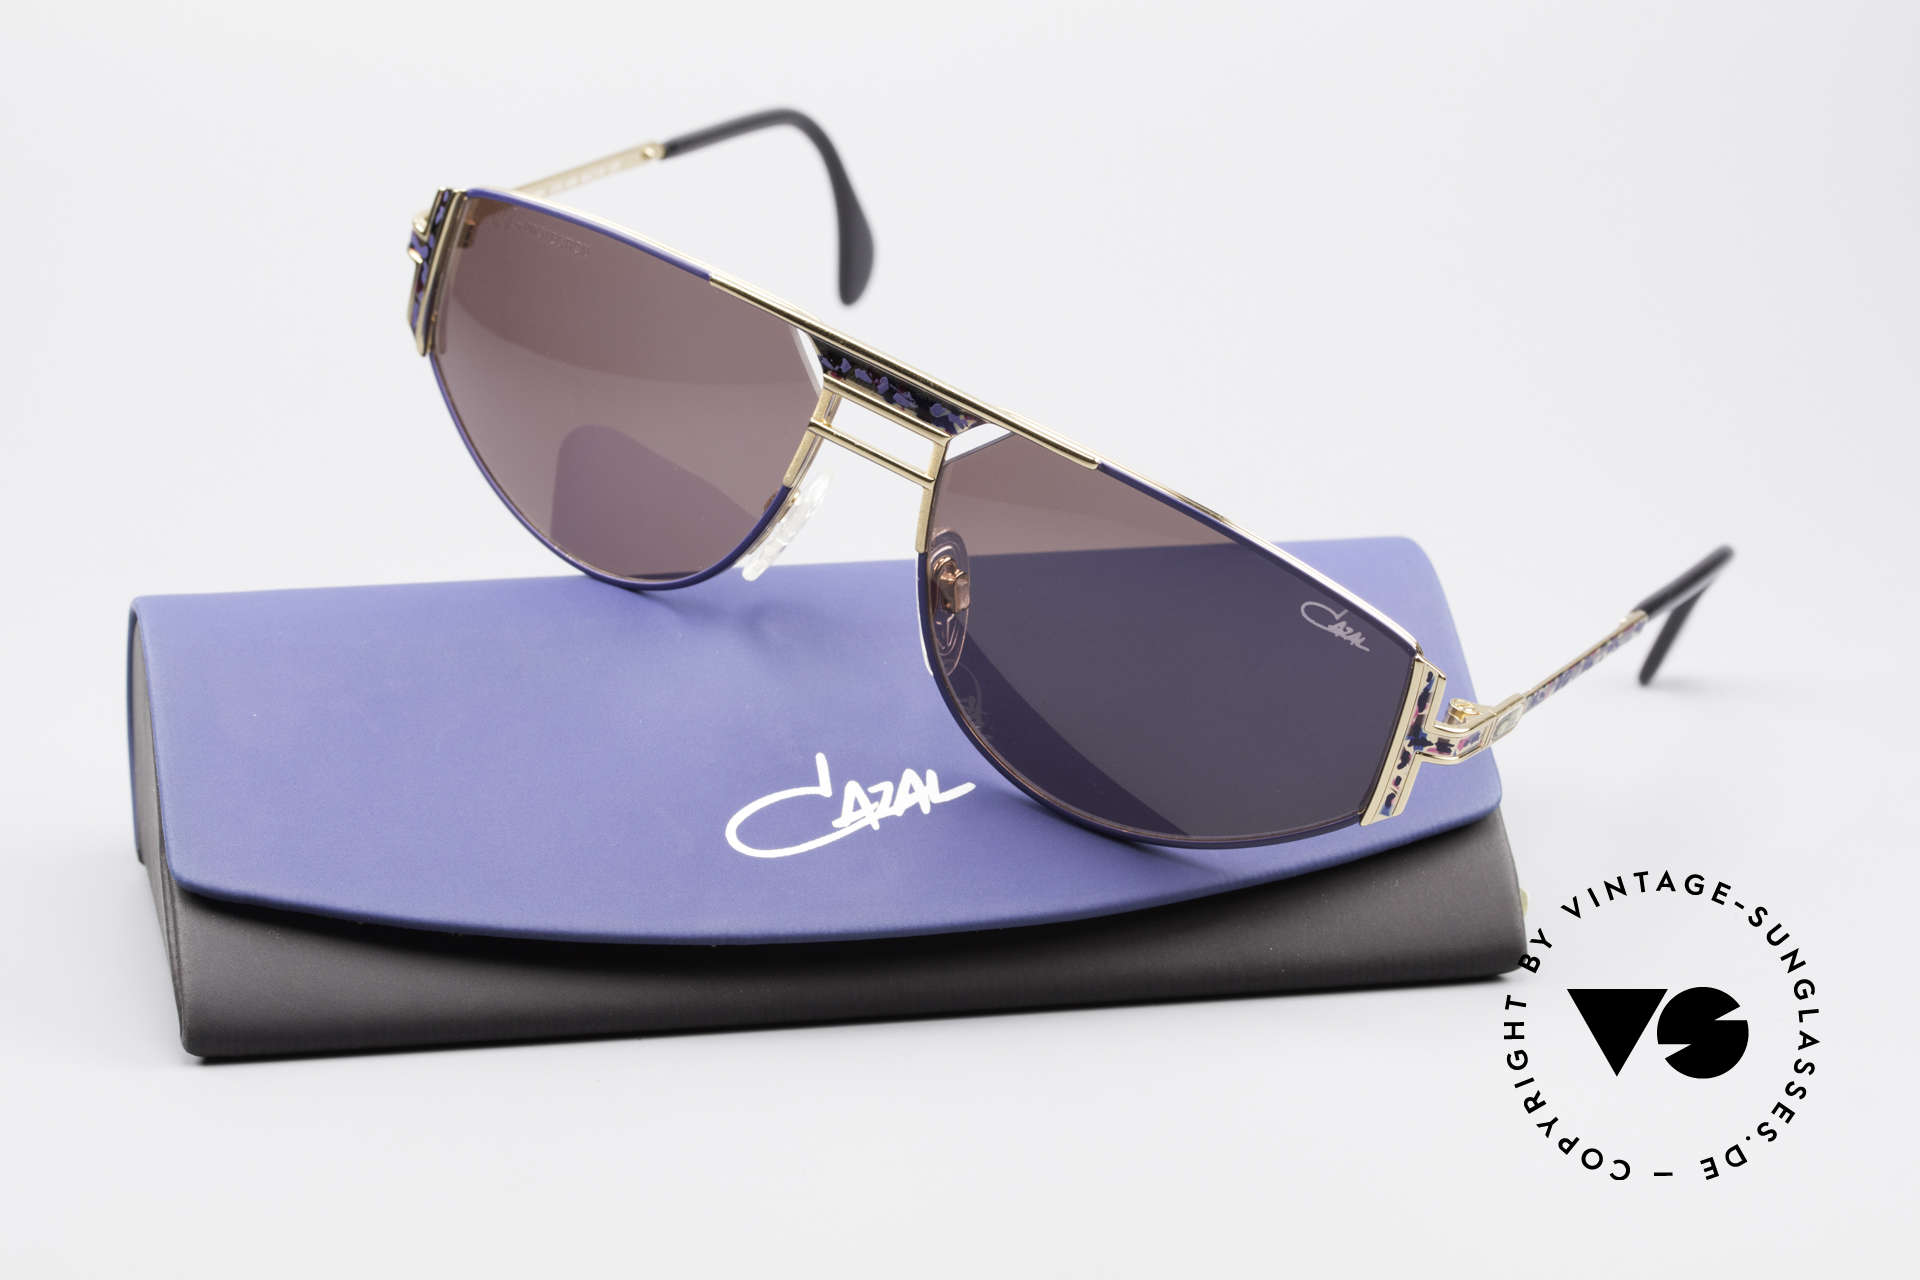 Cazal 964 True Vintage 90s Sunglasses, unworn rarity (like all our old vintage Cazal eyewear), Made for Men and Women